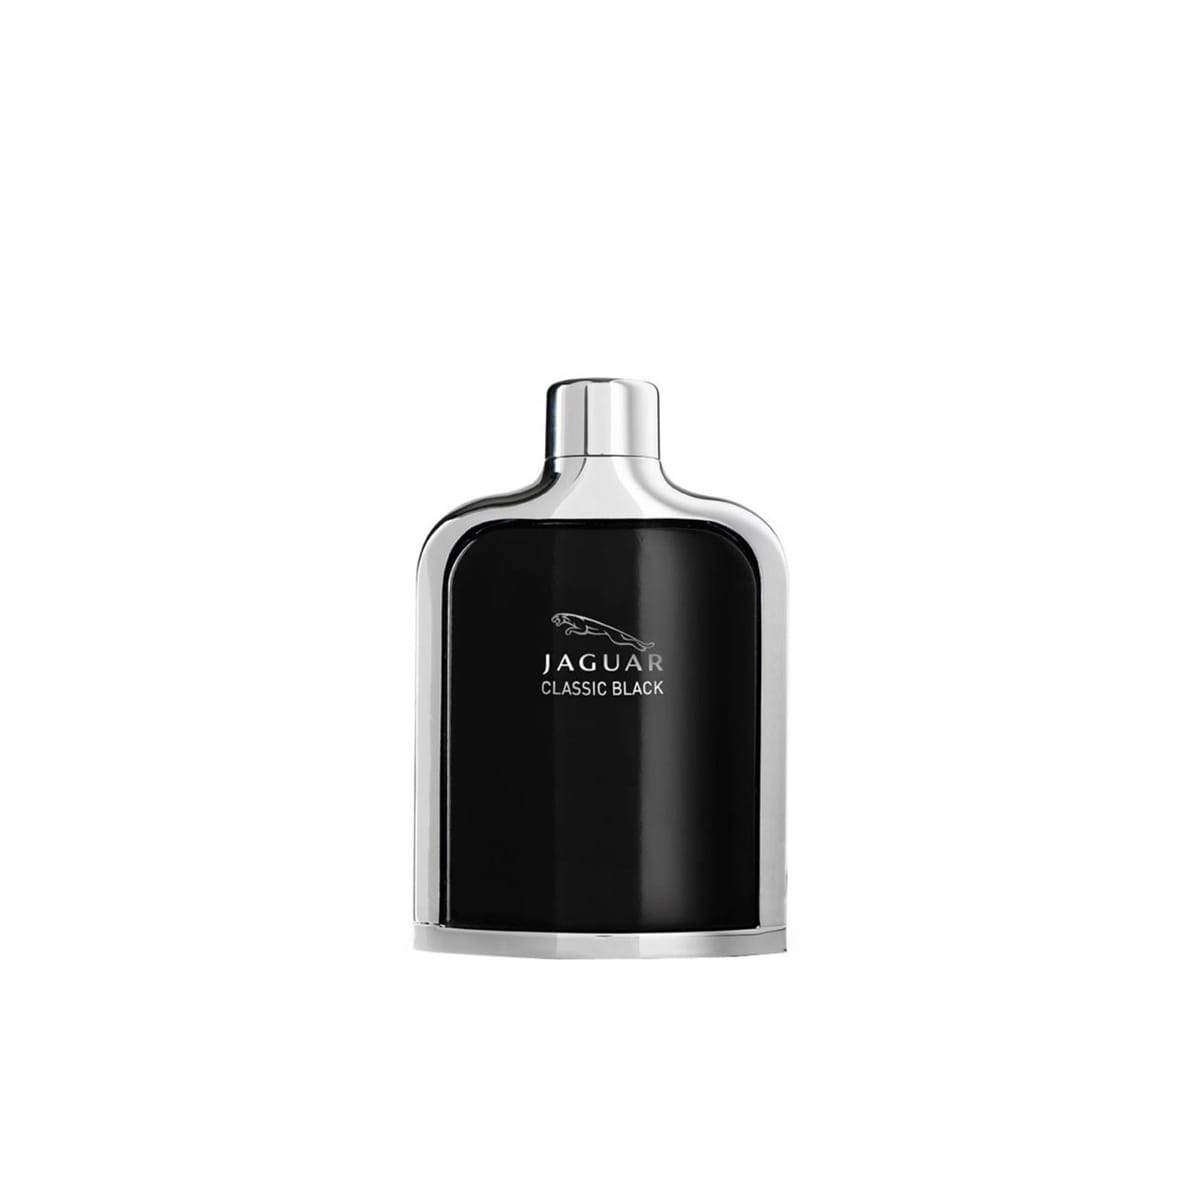 jaguar classic black eau de toilette incenza. Black Bedroom Furniture Sets. Home Design Ideas